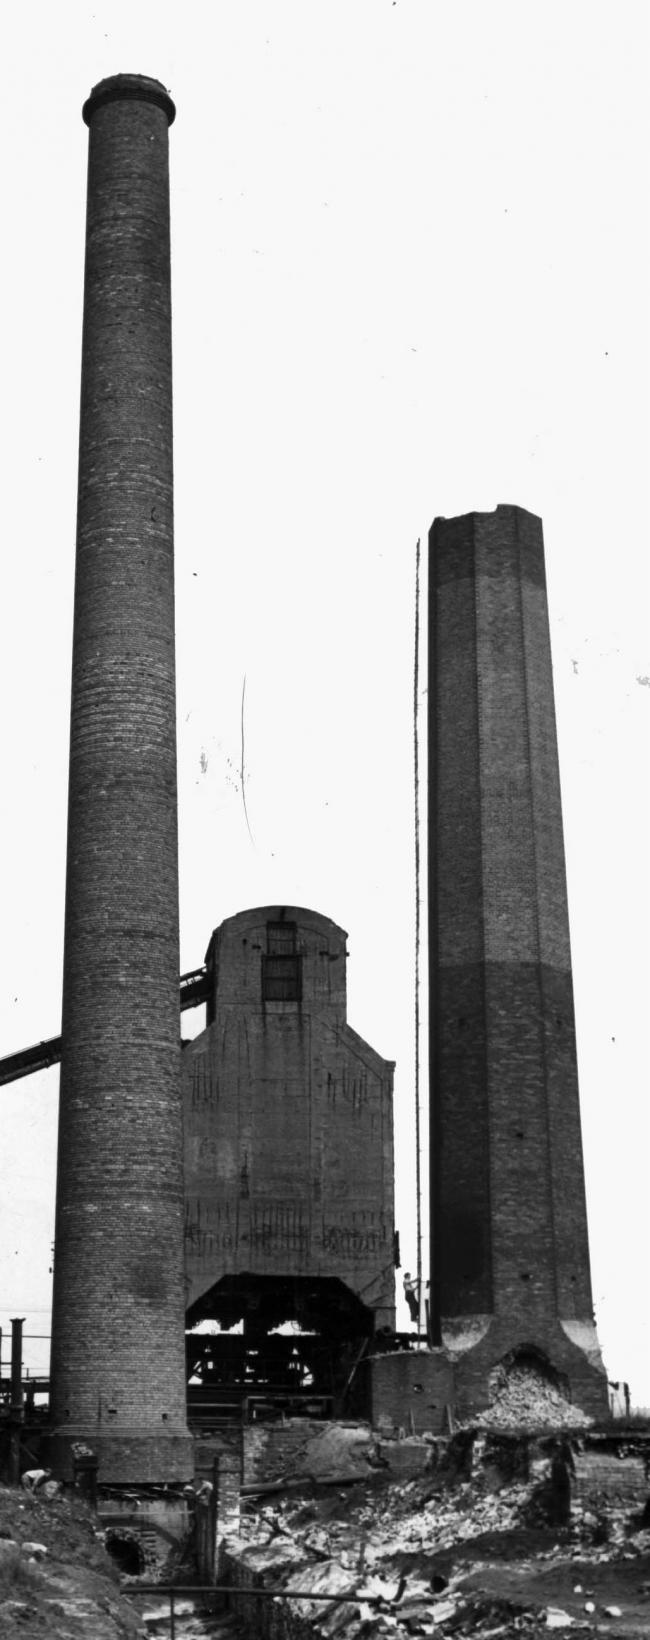 TO THE TOP: You can see the demolition ladder going up the Bearpark chimney which Robin climbed – although demolition has already begun in this photo, as the chimney has lost its death-defying top